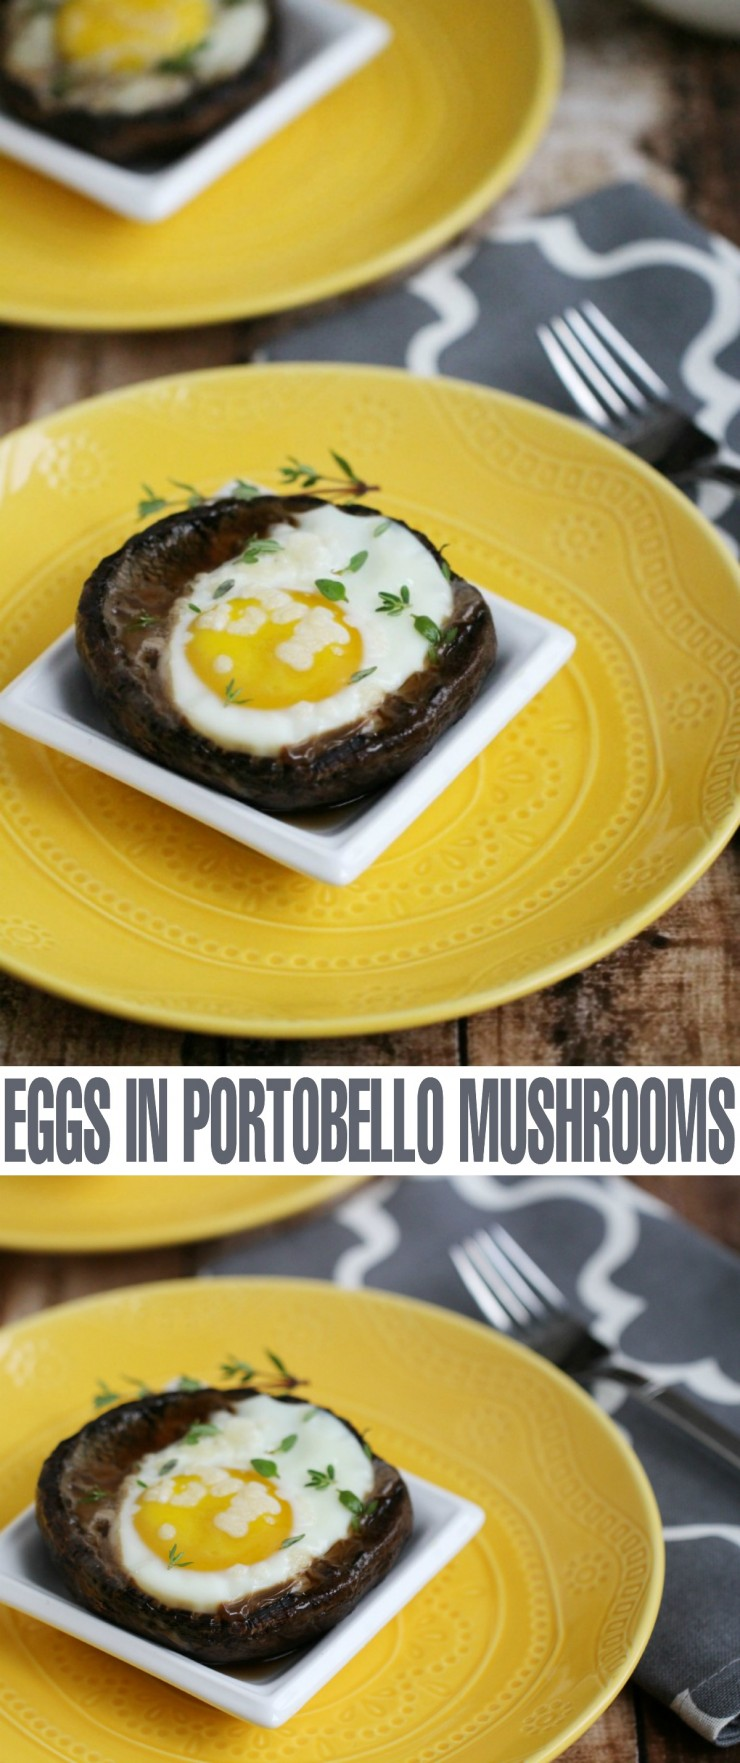 These Grilled Eggs in Portobello Mushrooms are Perfect for a Summer Barbecue - grill them up for breakfast, lunch or dinner!